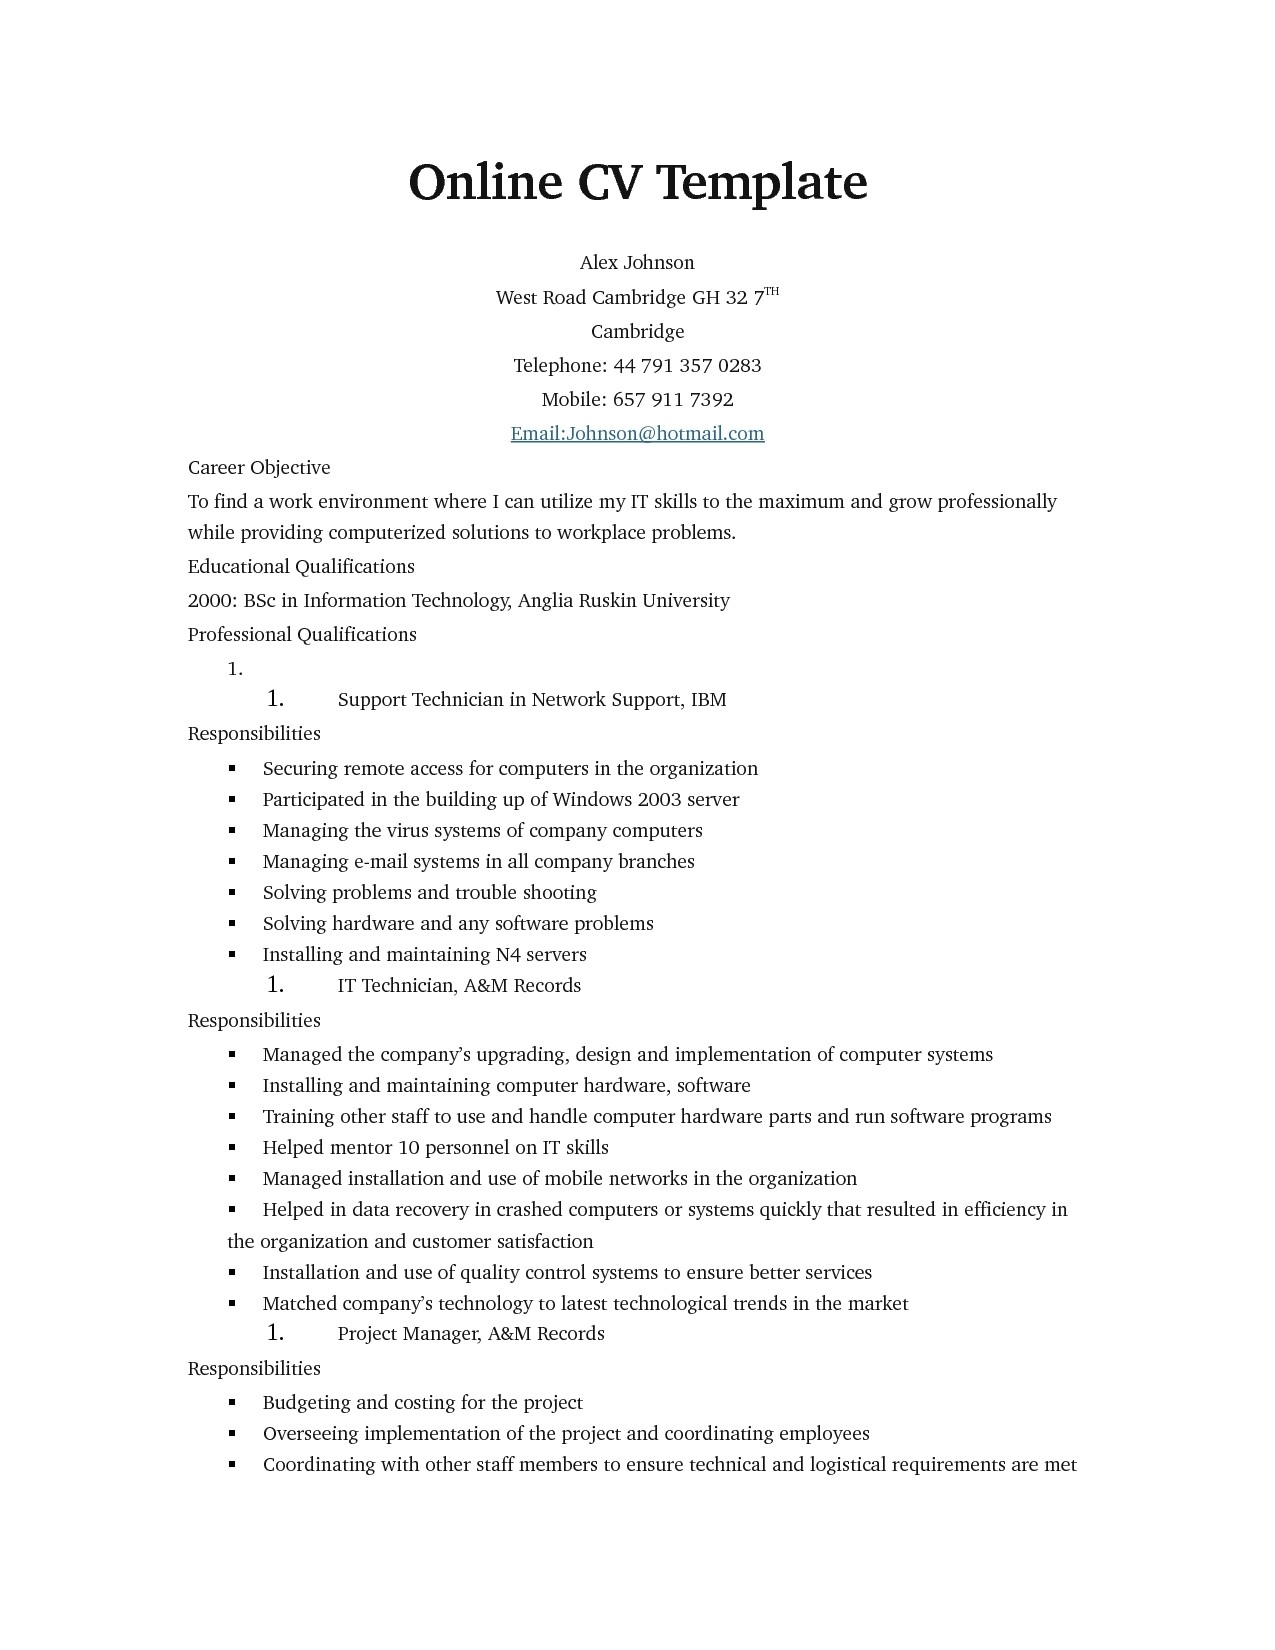 Resumes Templates Free Online Resume Templates Health Symptoms and Cure Com